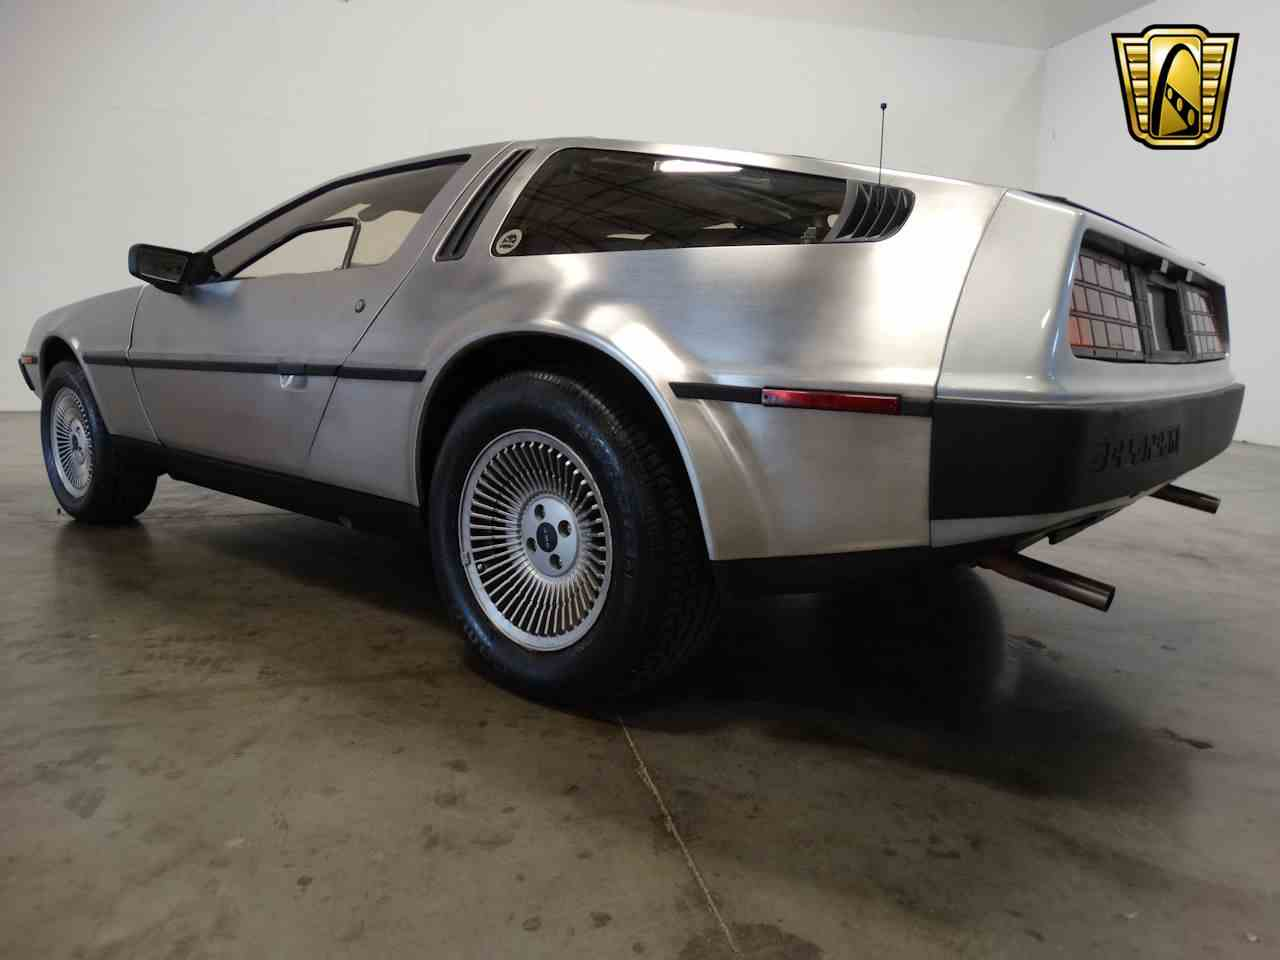 Large Picture of '81 DeLorean DMC-12 located in La Vergne Tennessee - $29,995.00 Offered by Gateway Classic Cars - Nashville - M2L4